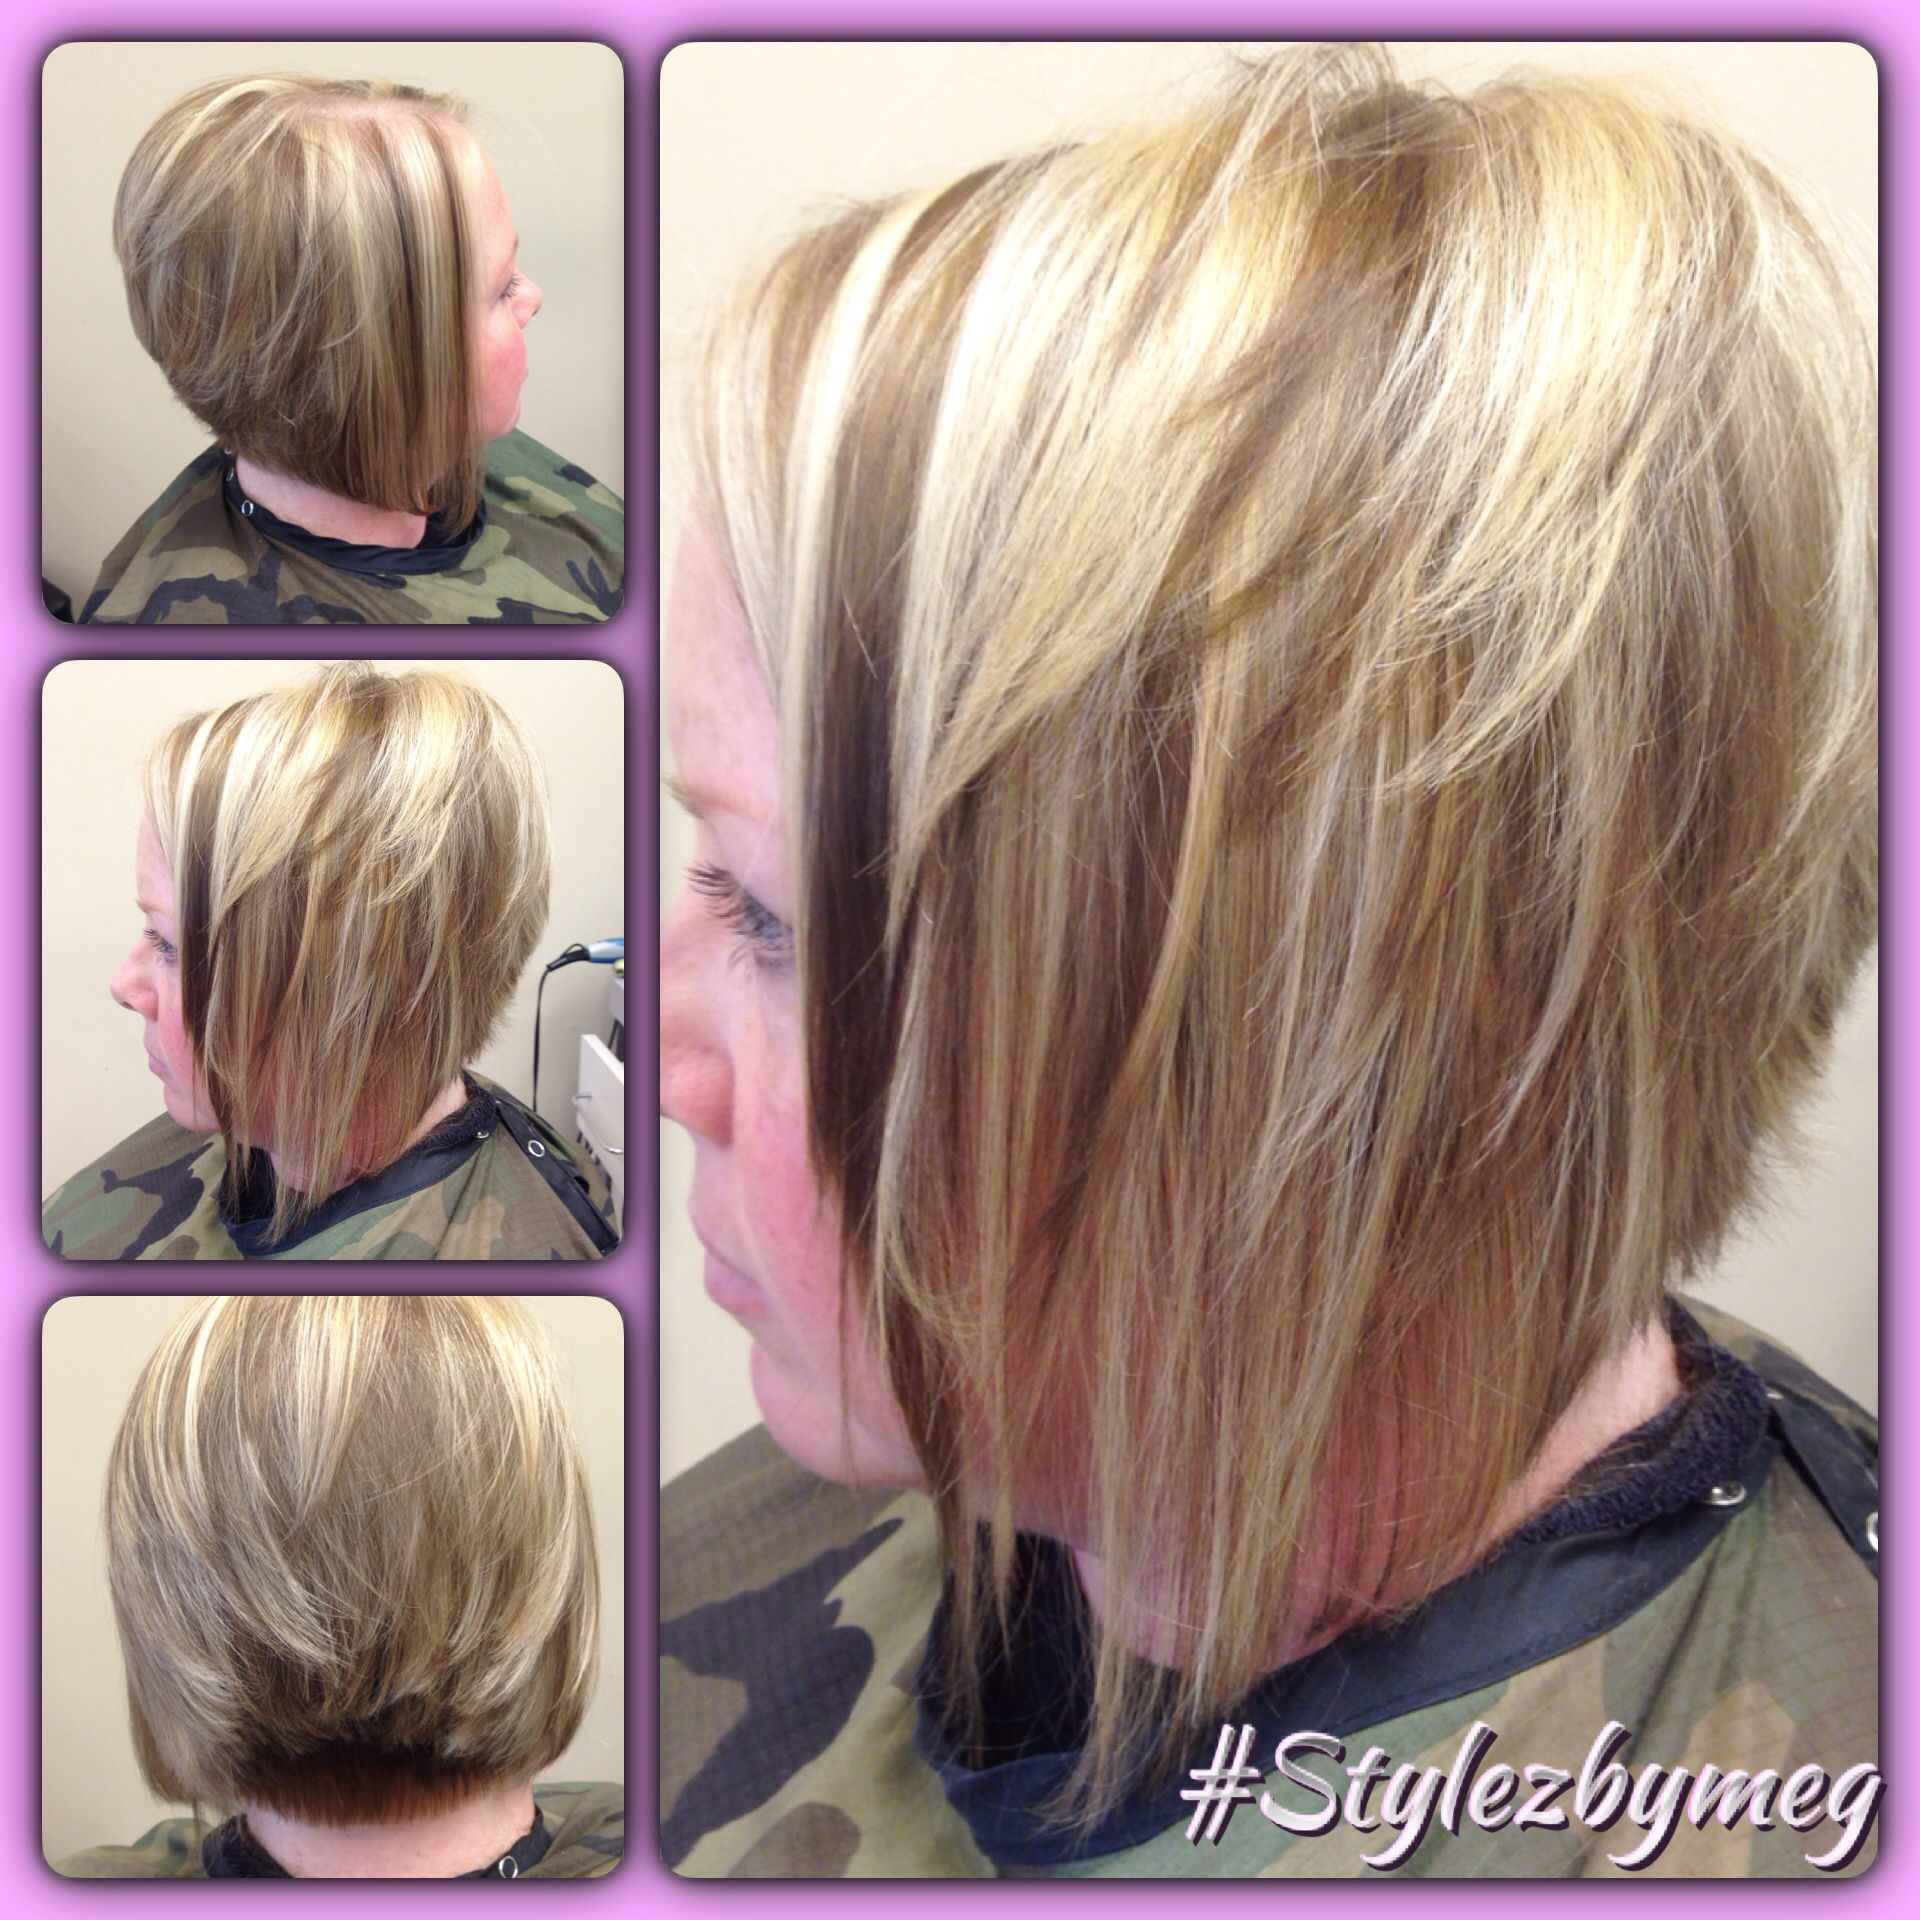 Short haircut with fun thick highlights and lowlights for fall 2014